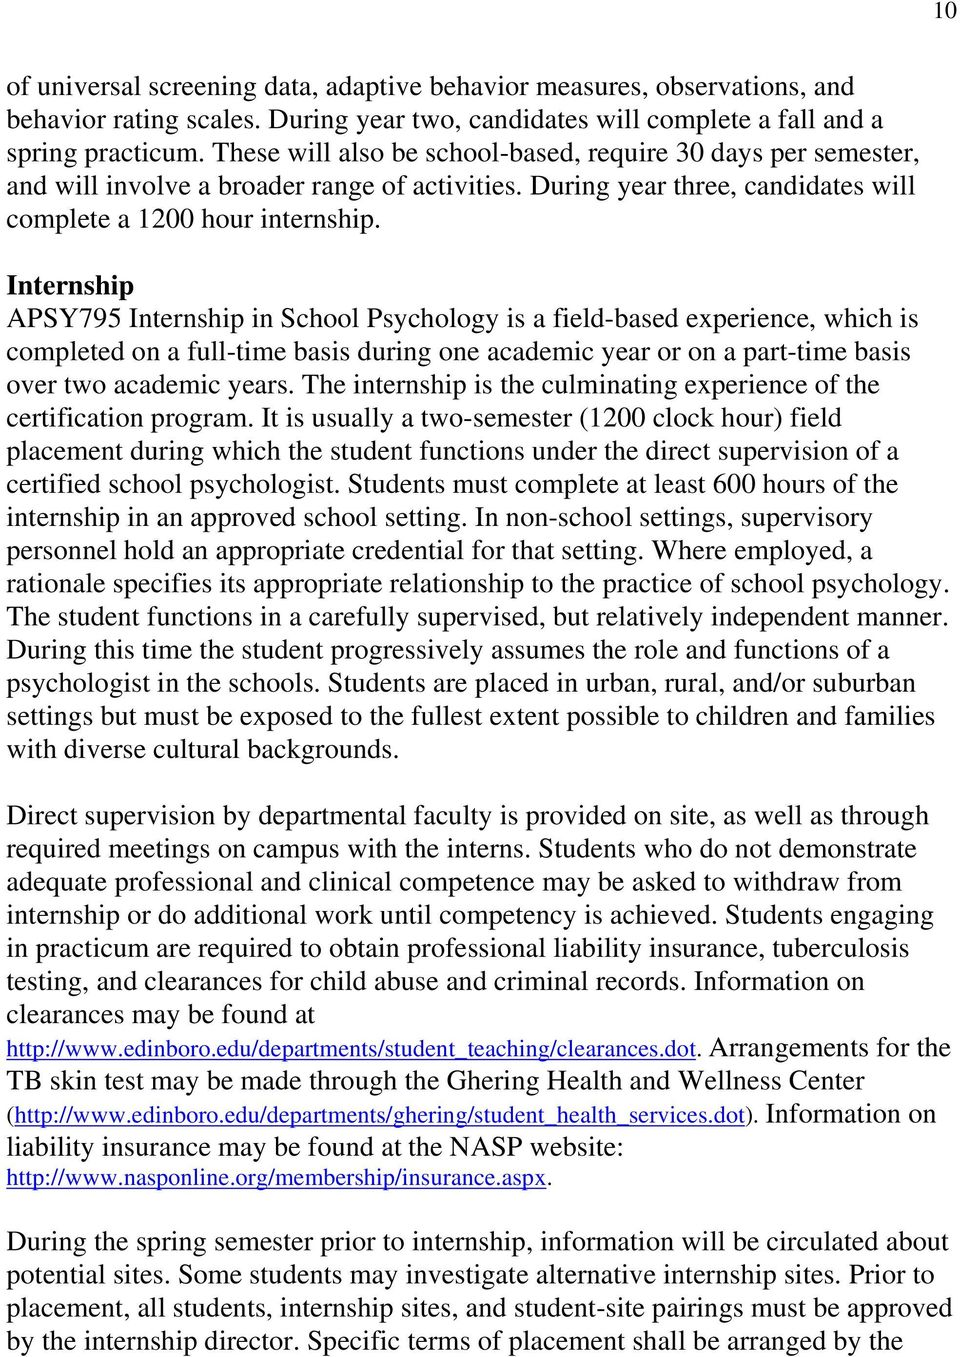 Internship APSY795 Internship in School Psychology is a field-based experience, which is completed on a full-time basis during one academic year or on a part-time basis over two academic years.